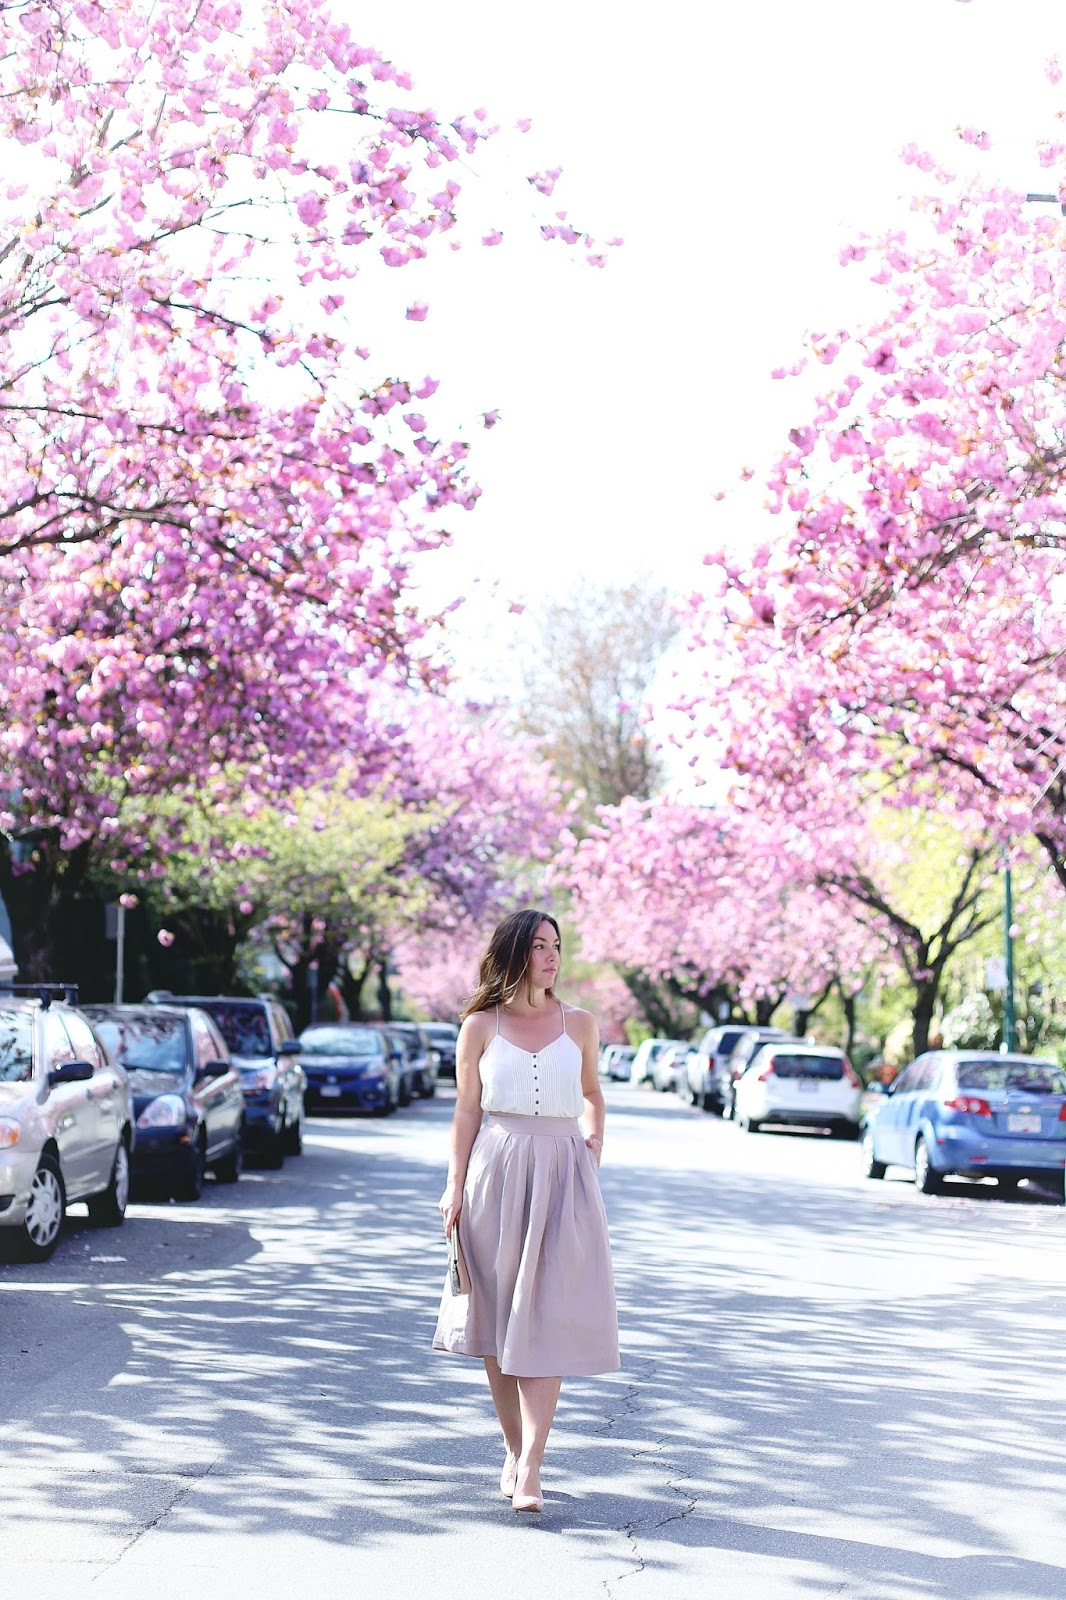 Where to see cherry blossoms in Vancouver at Fairview, Vanier Park, David Lam Park, Go Fish, Granville Island, cherry blossoms spots in Vancouver, best views of cherry blossoms in Vancouver by To Vogue or Bust